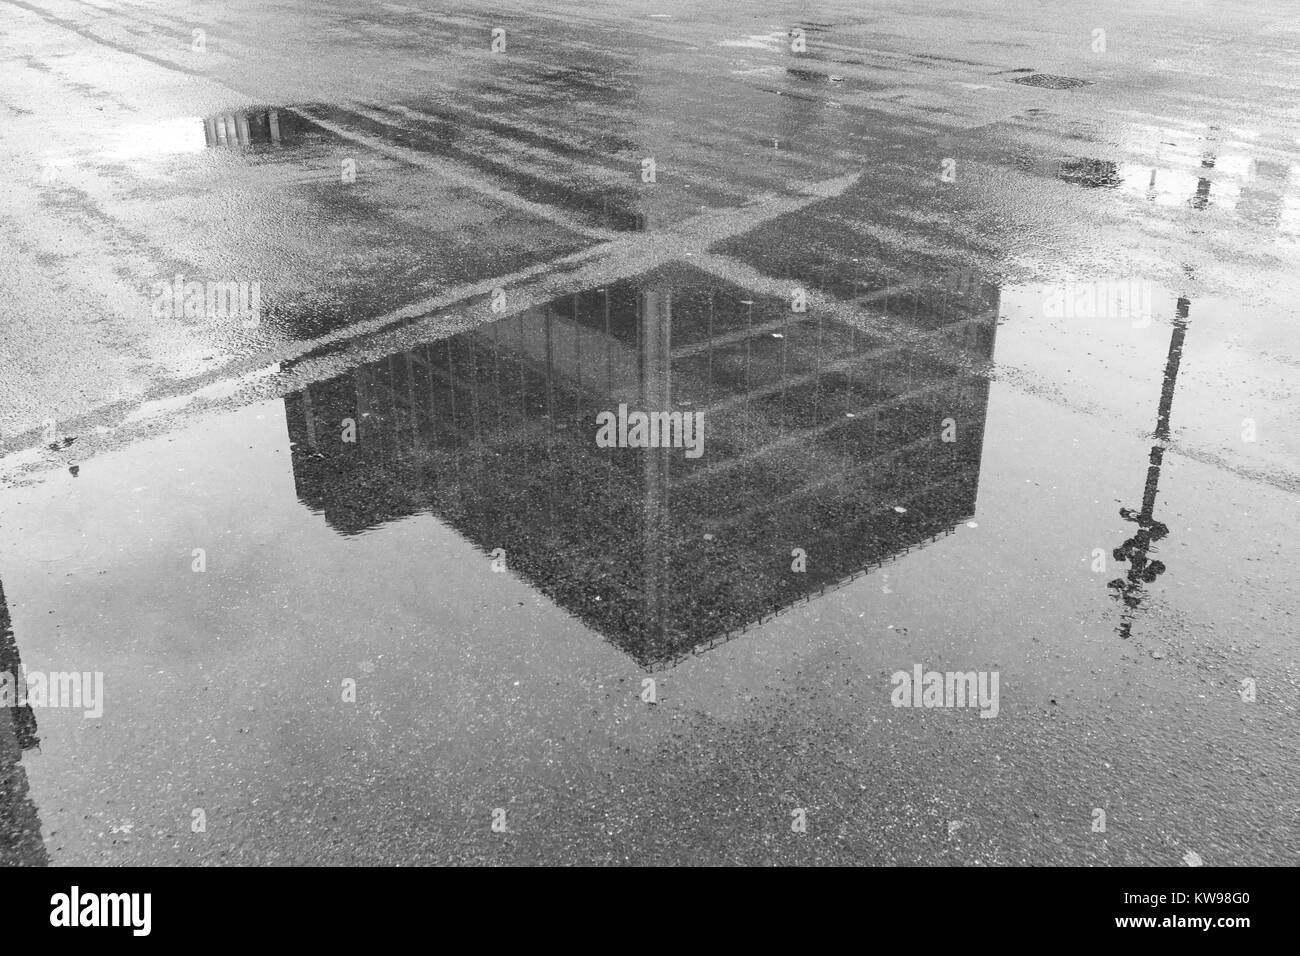 Reflection of new office buildings in puddles in Stratford, London. - Stock Image